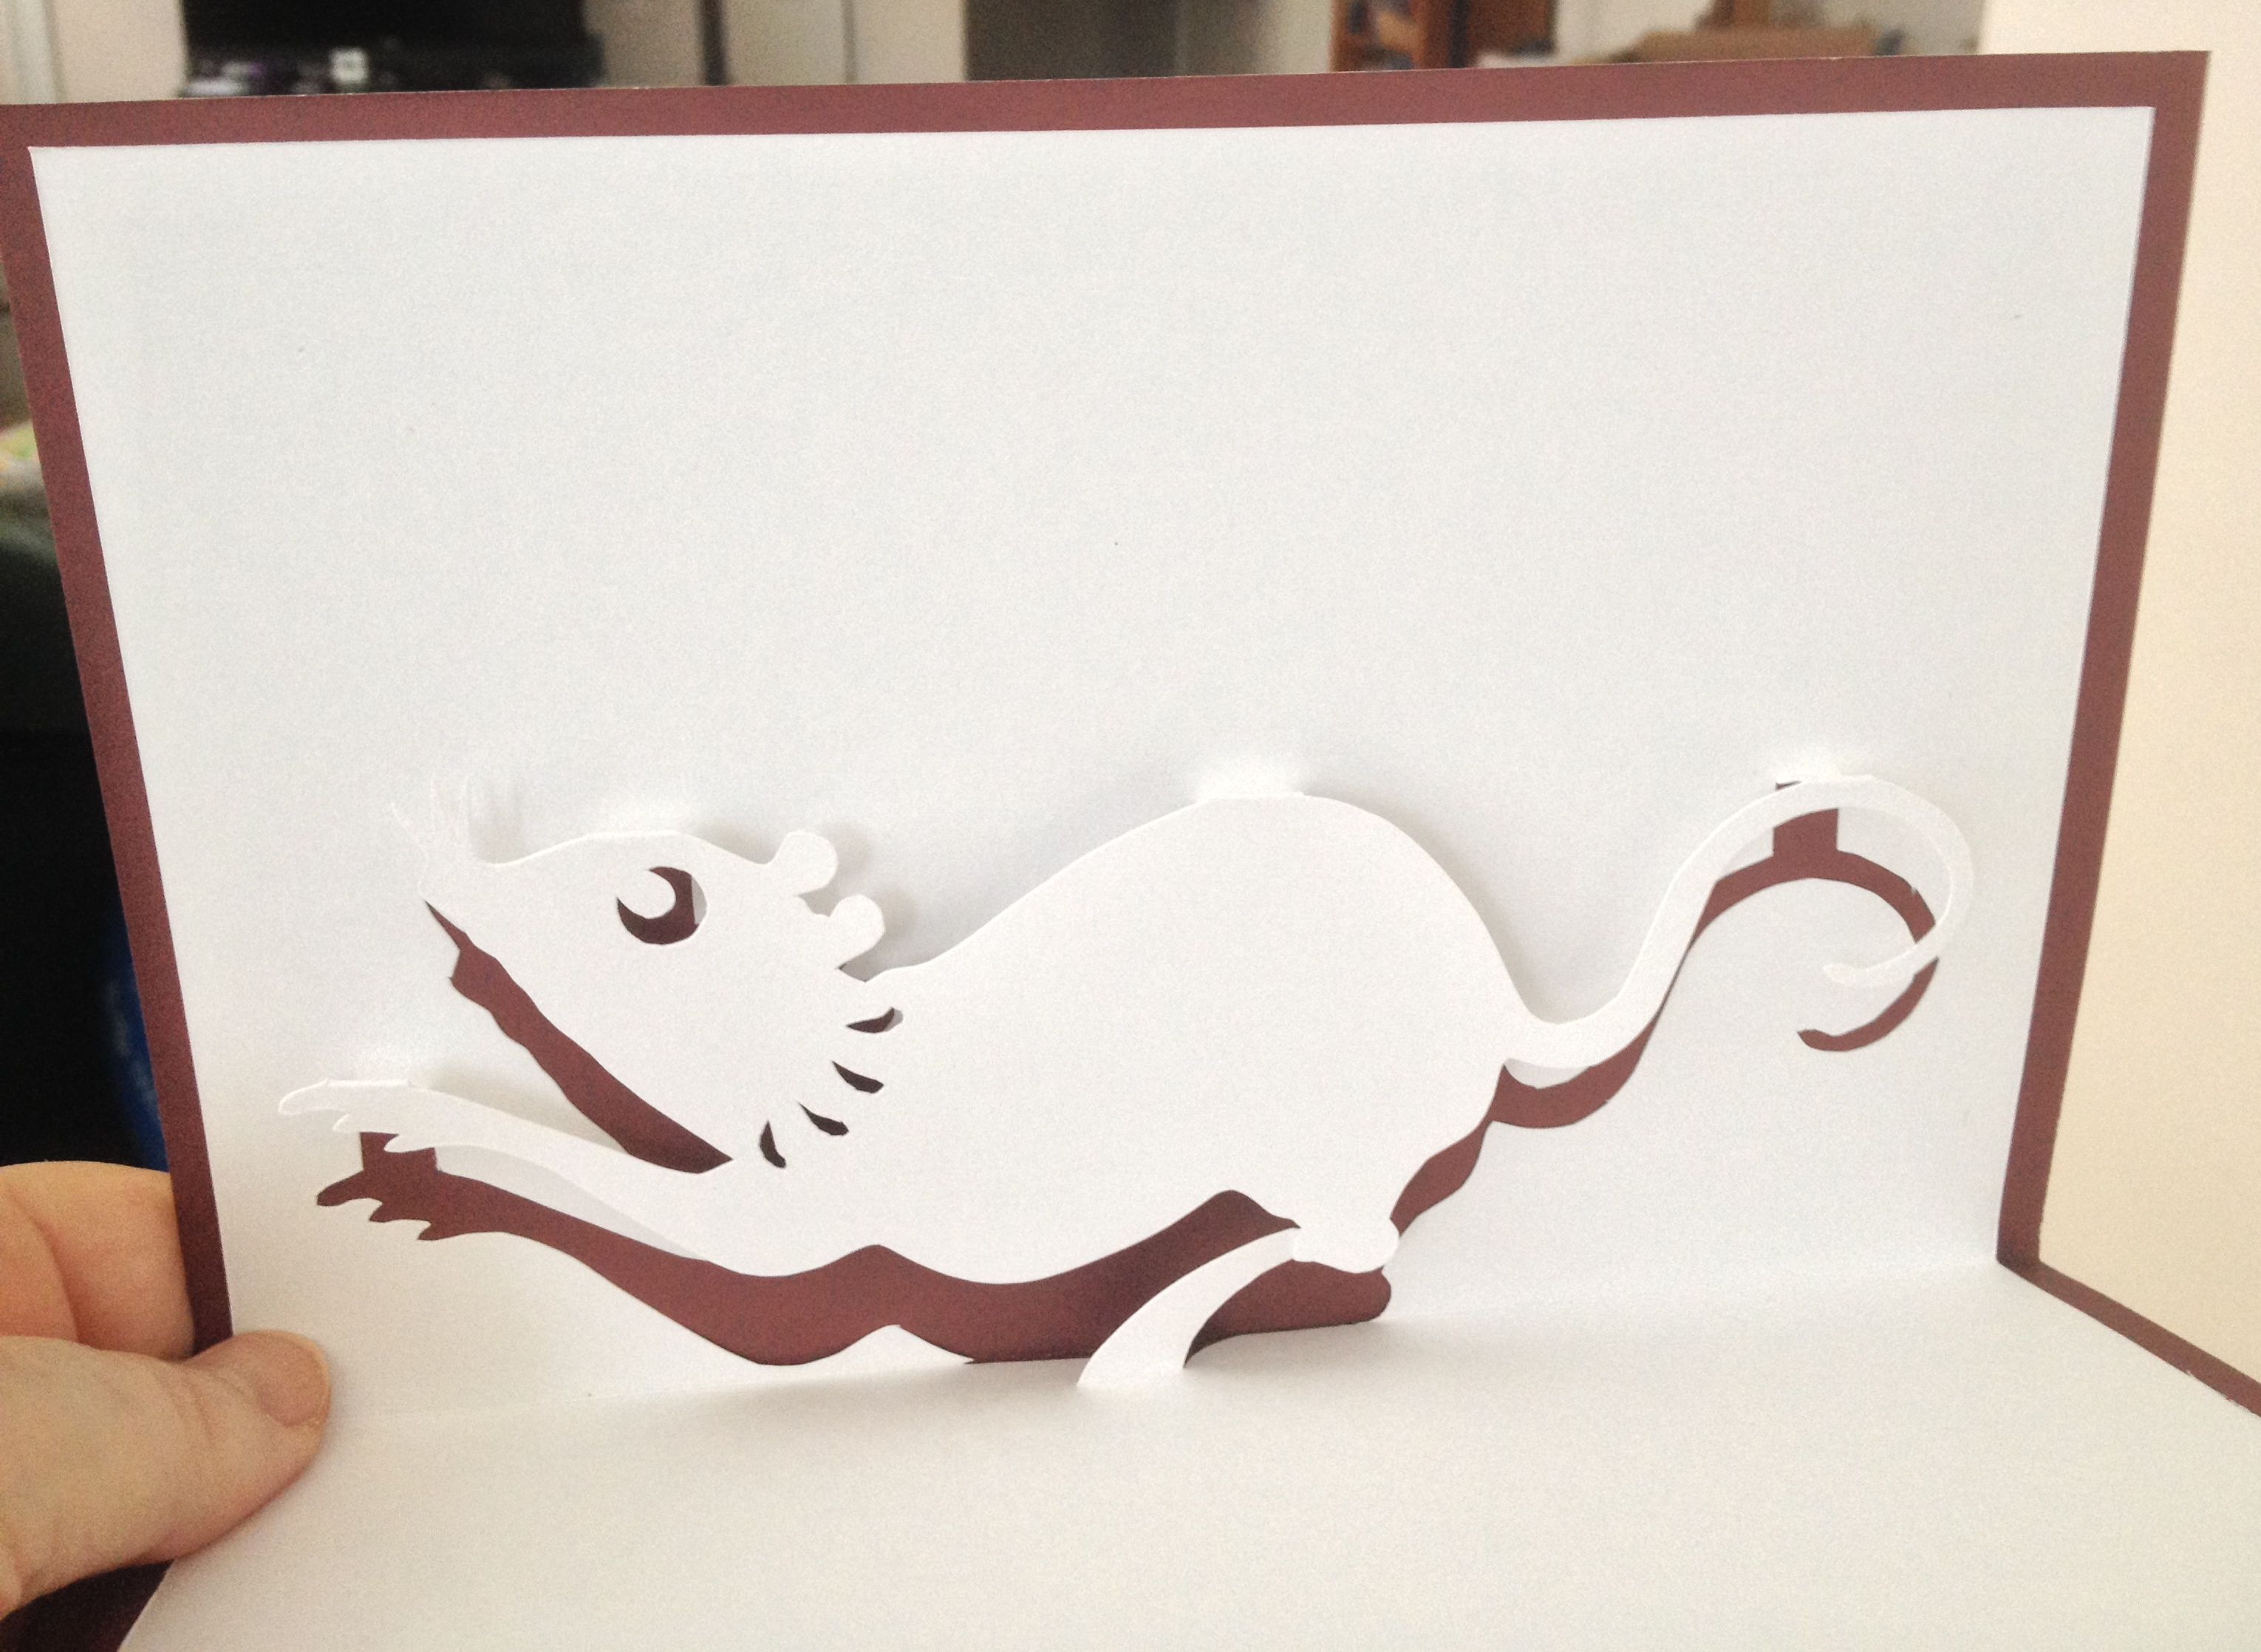 Year Of The Rat Symbol Pop Up Nana Cards Pinterest Rats